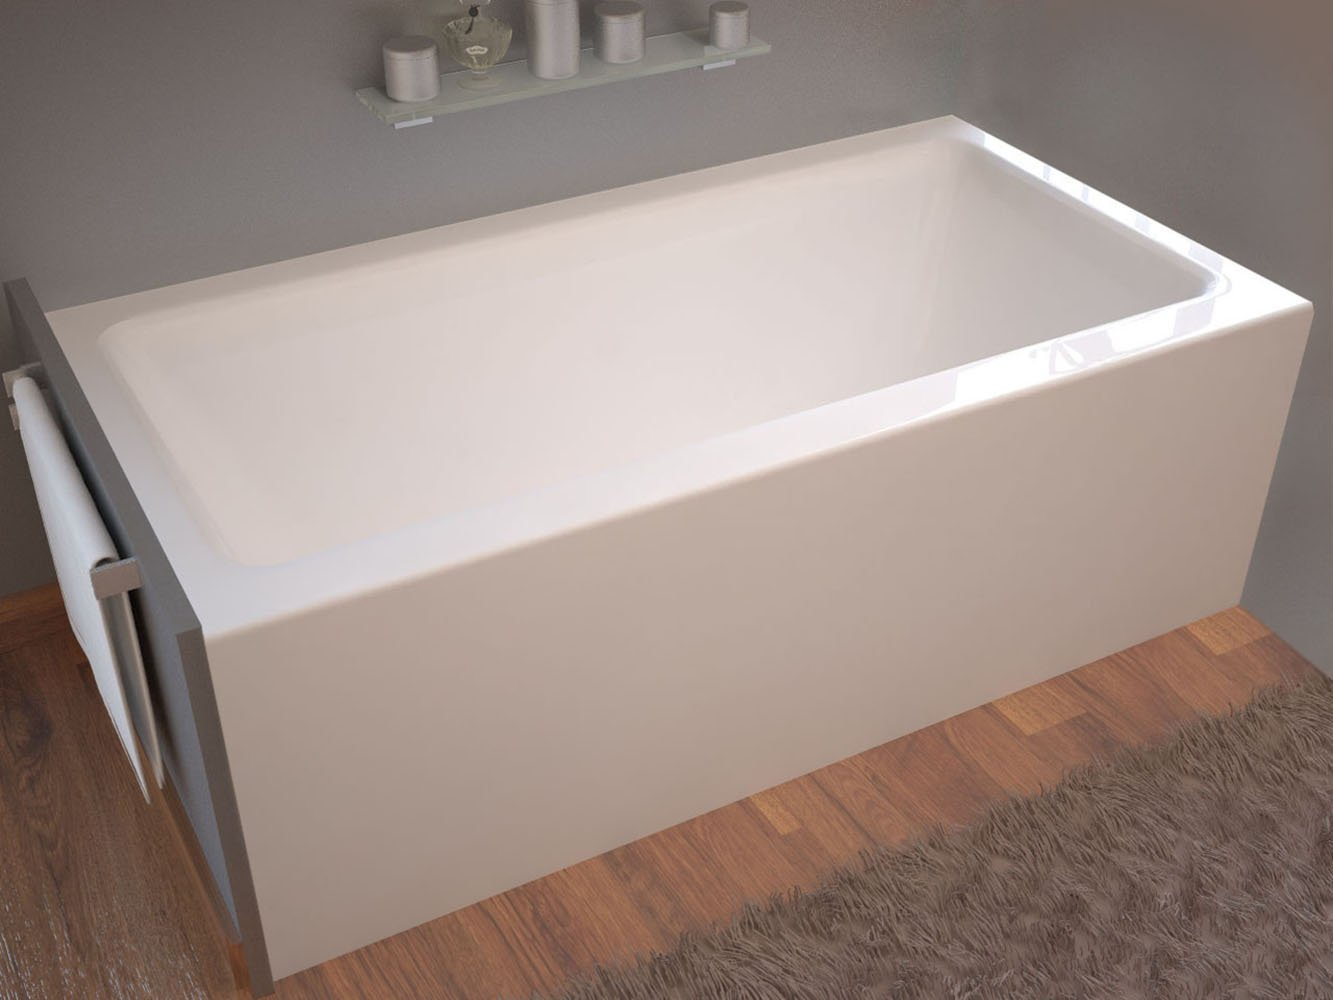 Pontormo 32 x 60 Front Skirted Drop-In Bathtub - Soaker Tub with ...